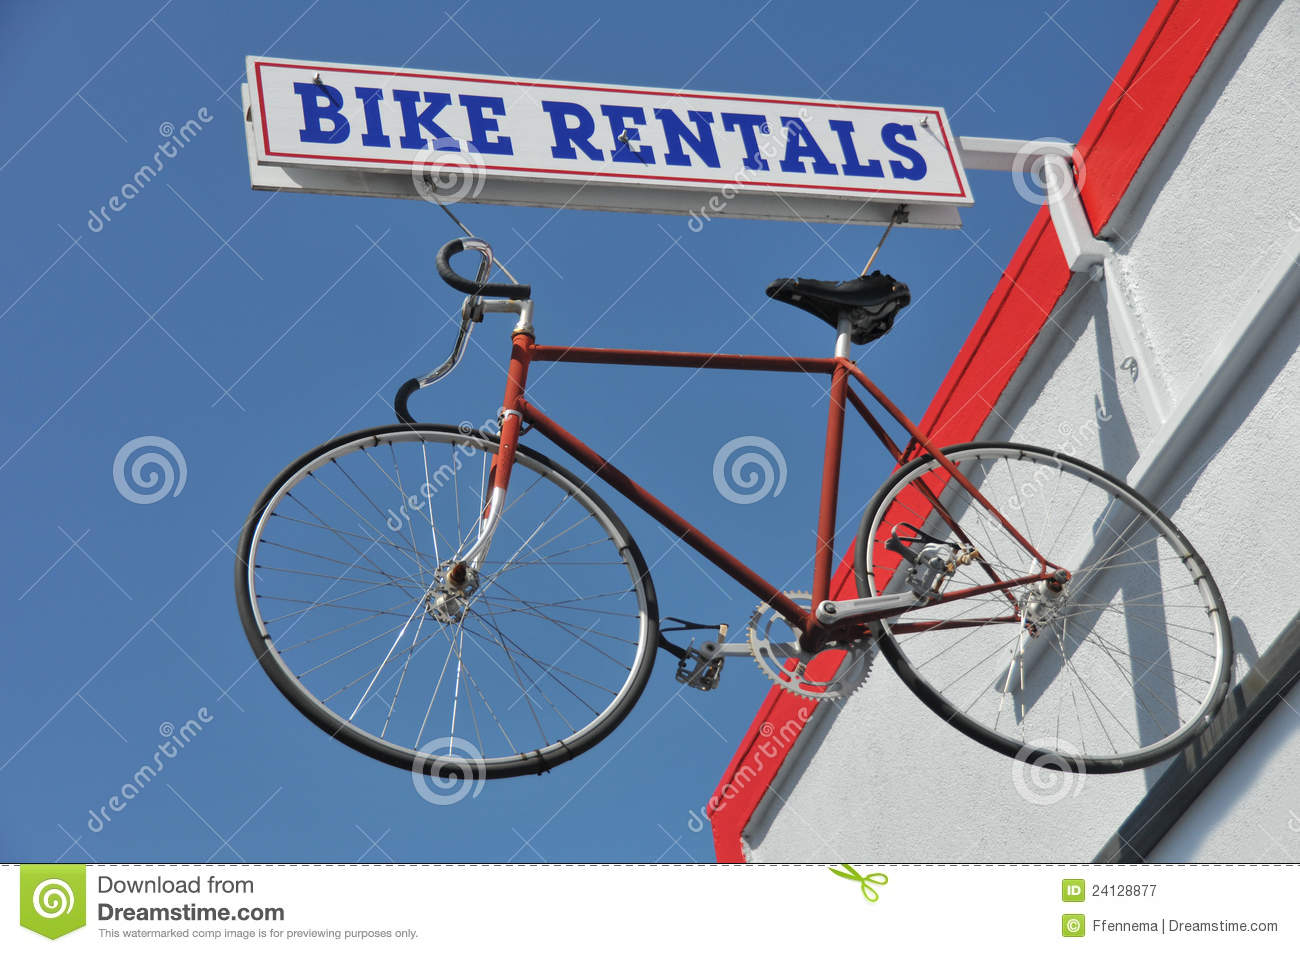 Bicycle hanges from a bike rentals sign outside royalty free stock photography image 24128877 Motor cycle rentals